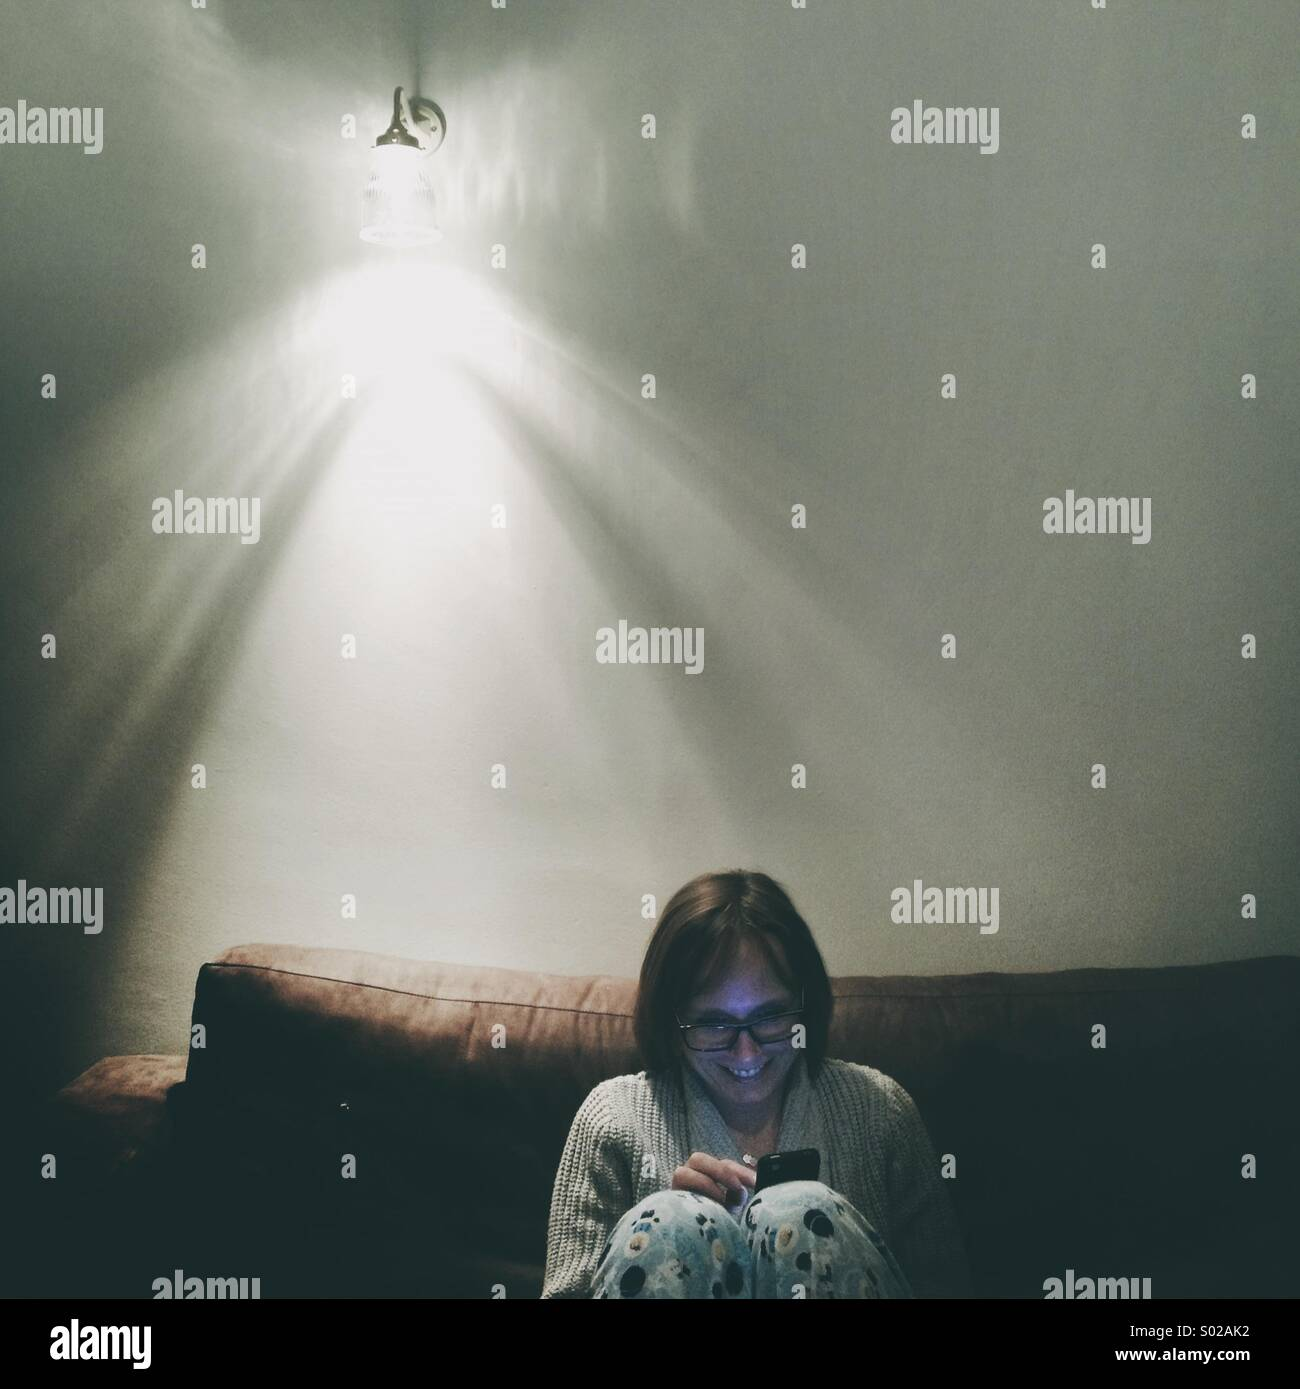 Lady at home on the sofa under a wall light chatting via social media on a mobile phone - Stock Image